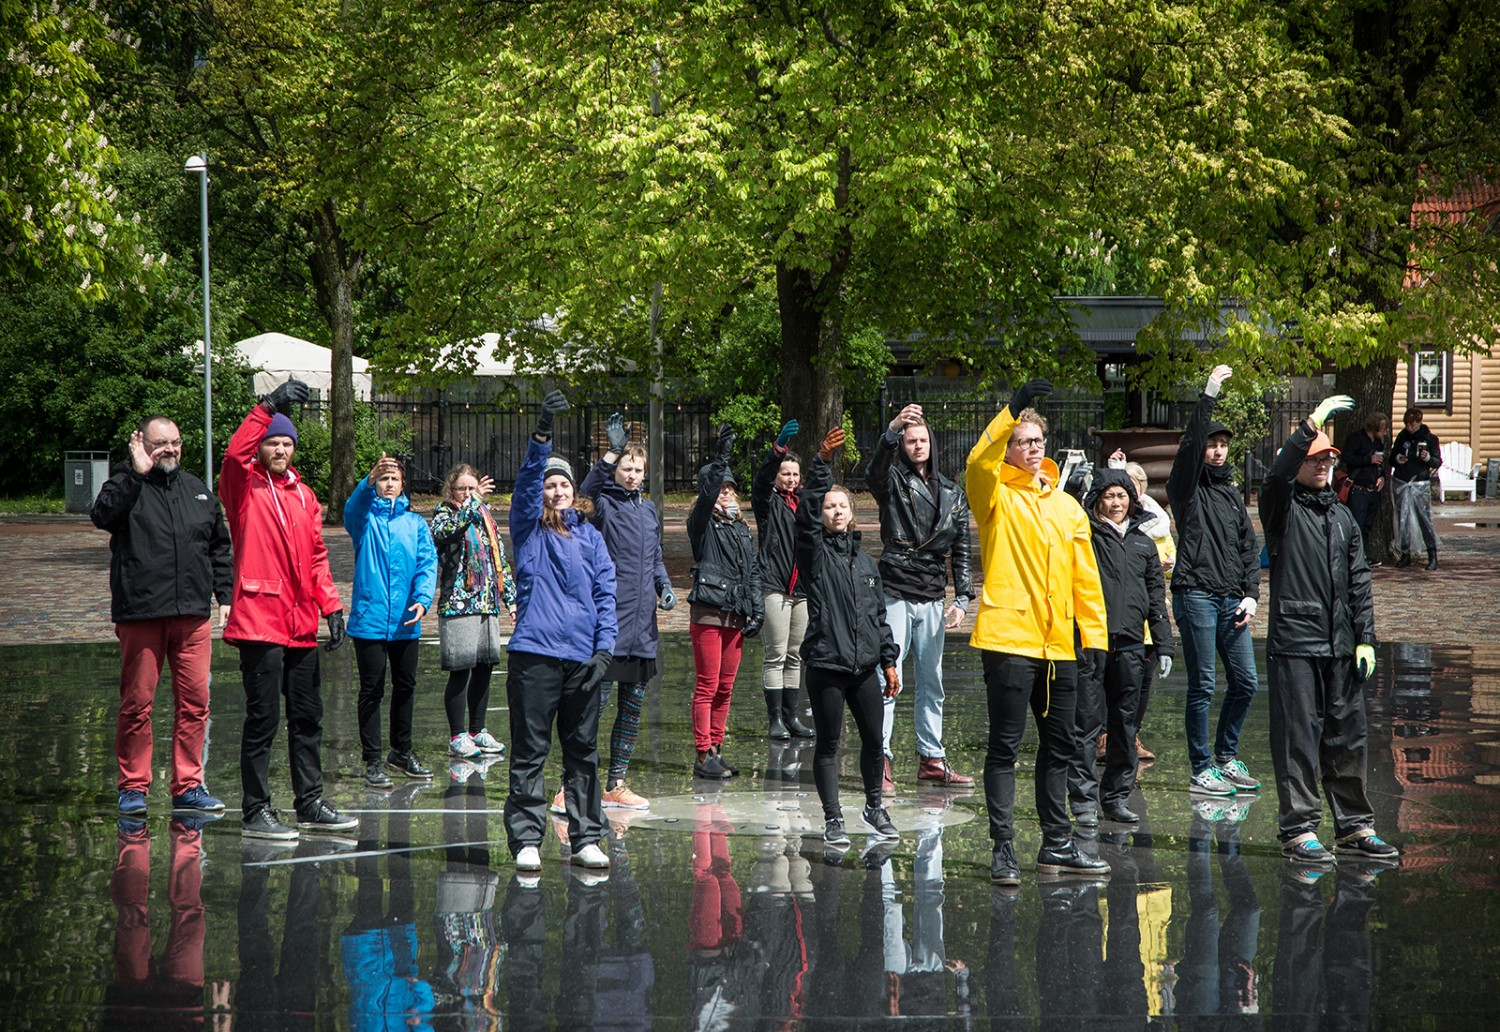 A group of peole in raincoats with their right arm raised.